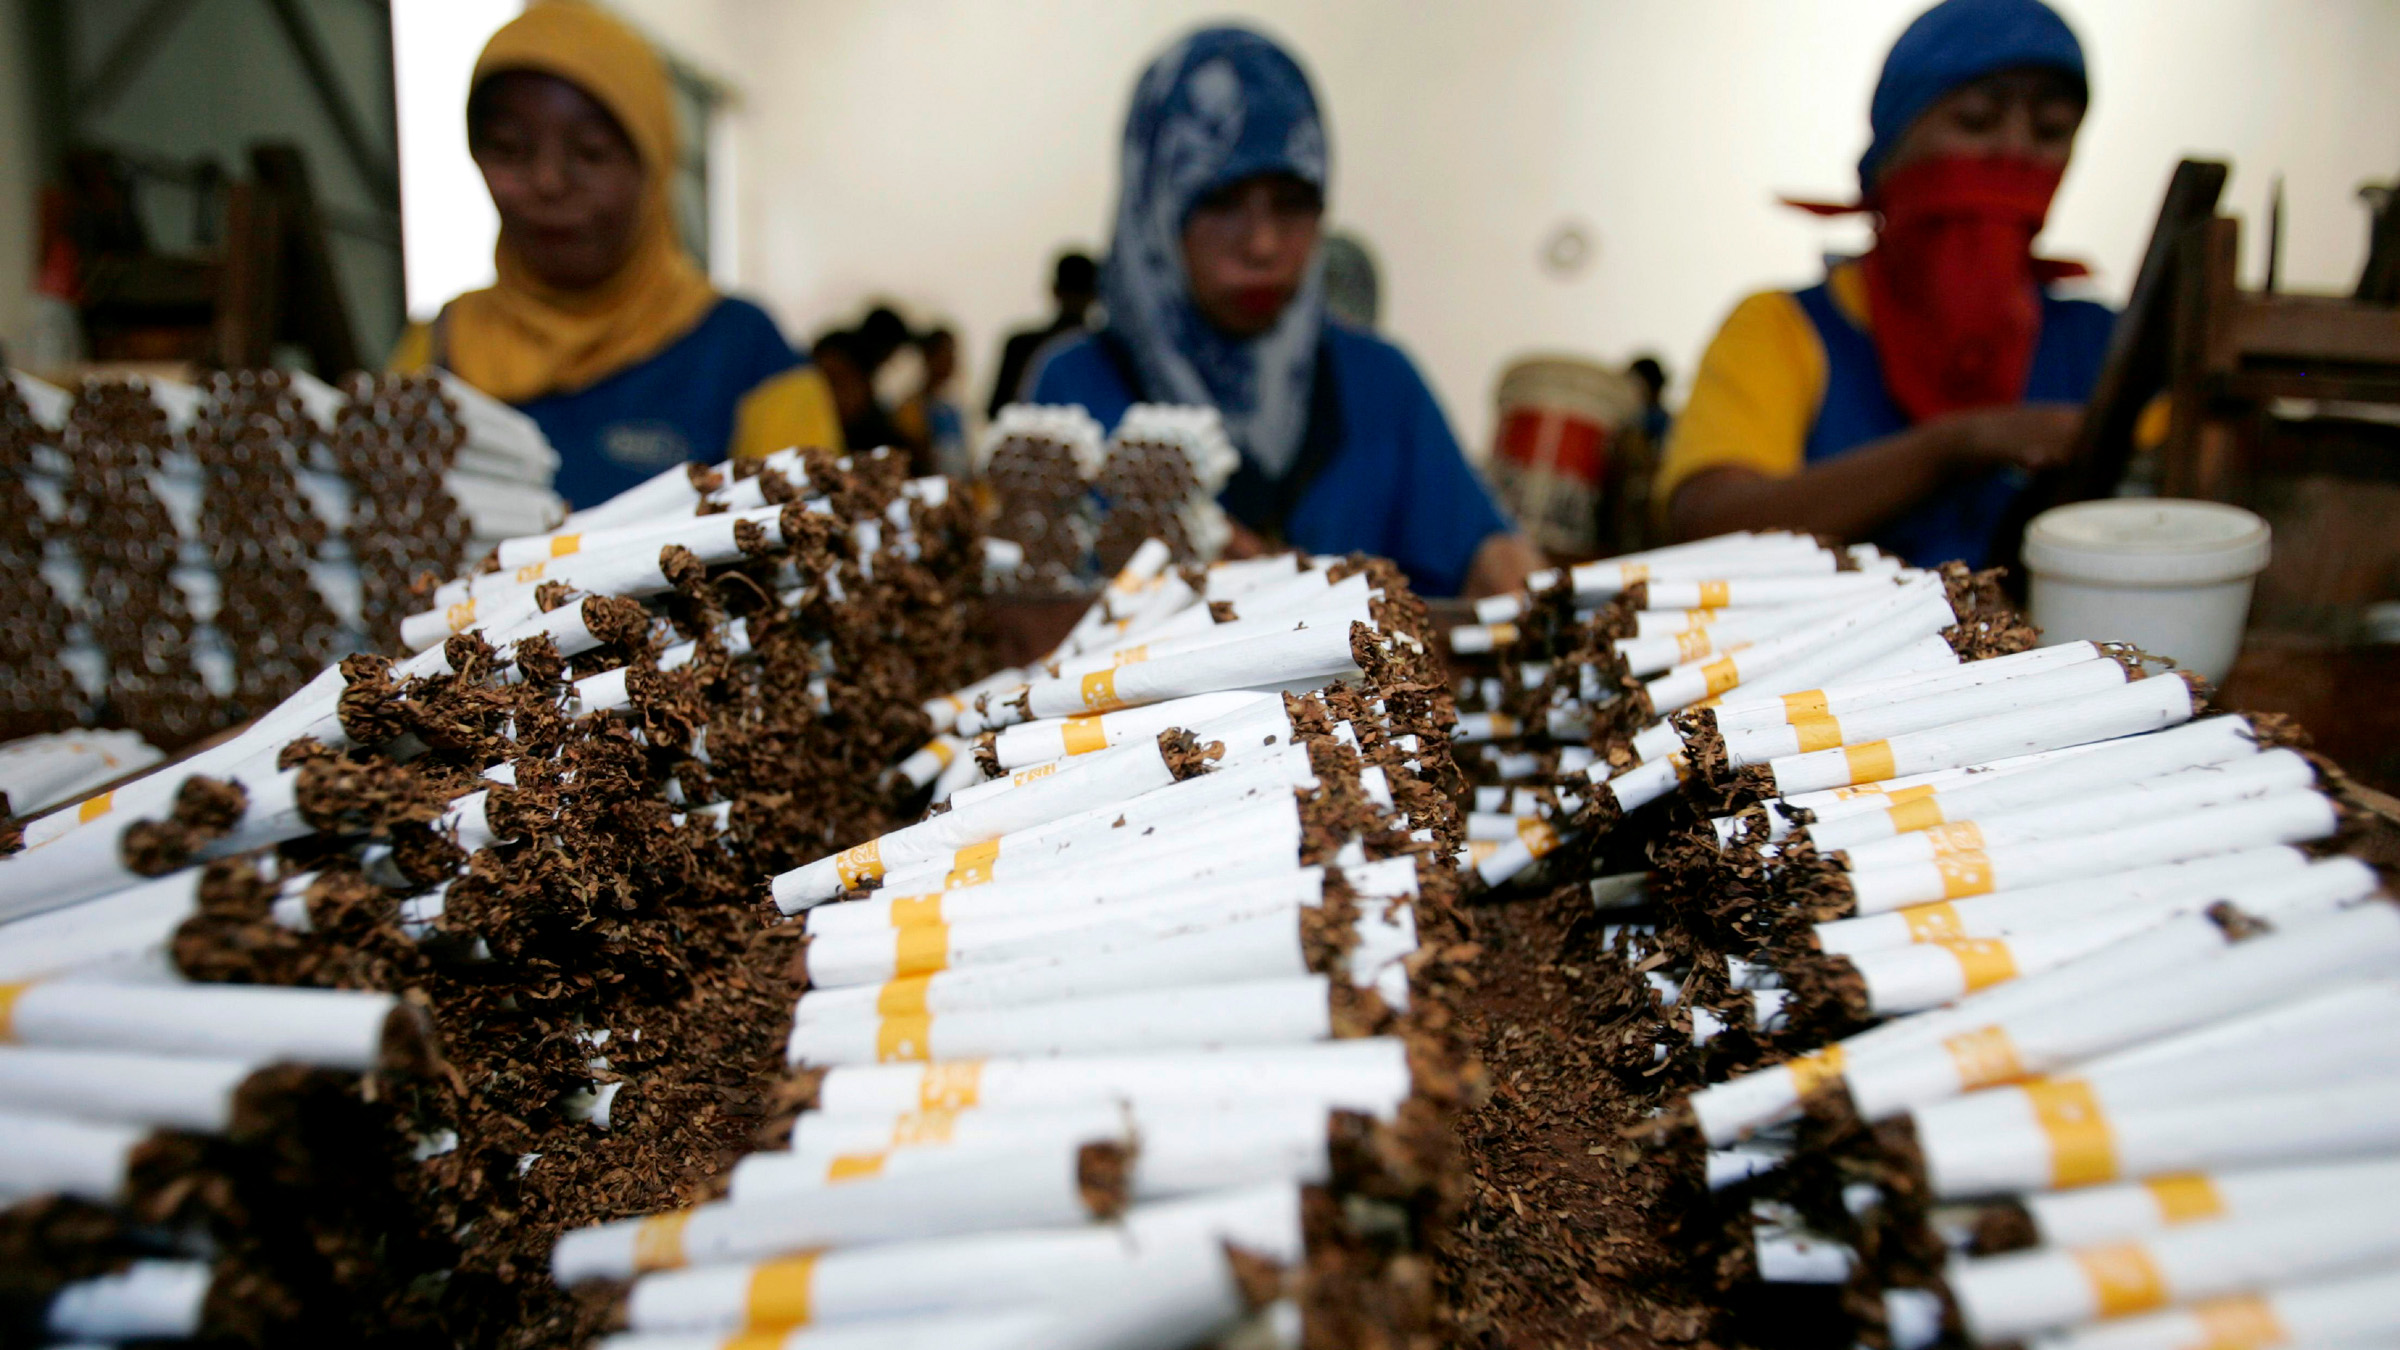 Workers roll cigarettes in a factory in Sidoarjo, East Java province February 2, 2009. The company's production manager said on Monday that the production of cigarettes has decreased after Indonesia's Ulema Council (MUI) issued a fatwa prohibiting smoking in public places and by pregnant women and children. Indonesian smokers and the country's tobacco industry have slammed a move by the nation's top Islamic body to place restrictions on tobacco use by Muslims, calling it an interference in private lives. Health campaigners welcomed the move, but said the government now needed to do more if there was to be any impact on curbing smoking in the world's fifth largest tobacco market.